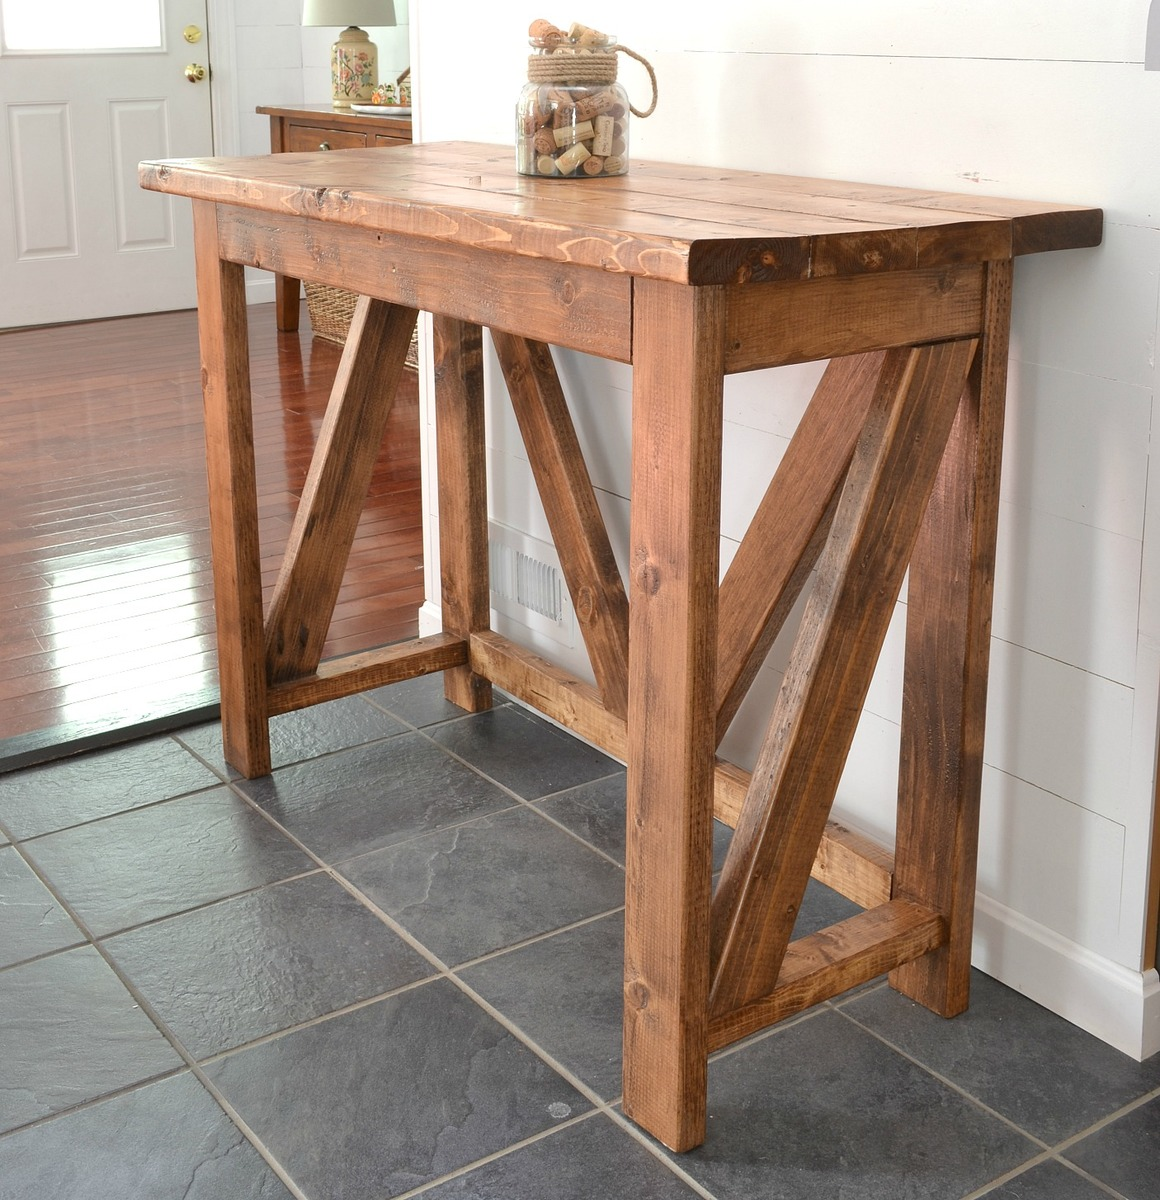 Delightful This Breakfast Bar Is A Great, Slim Addition To Even The Smallest Of  Kitchens. It Is The Perfect Pit Stop For A Cup Of Coffee Or A Snack For The  Kids.